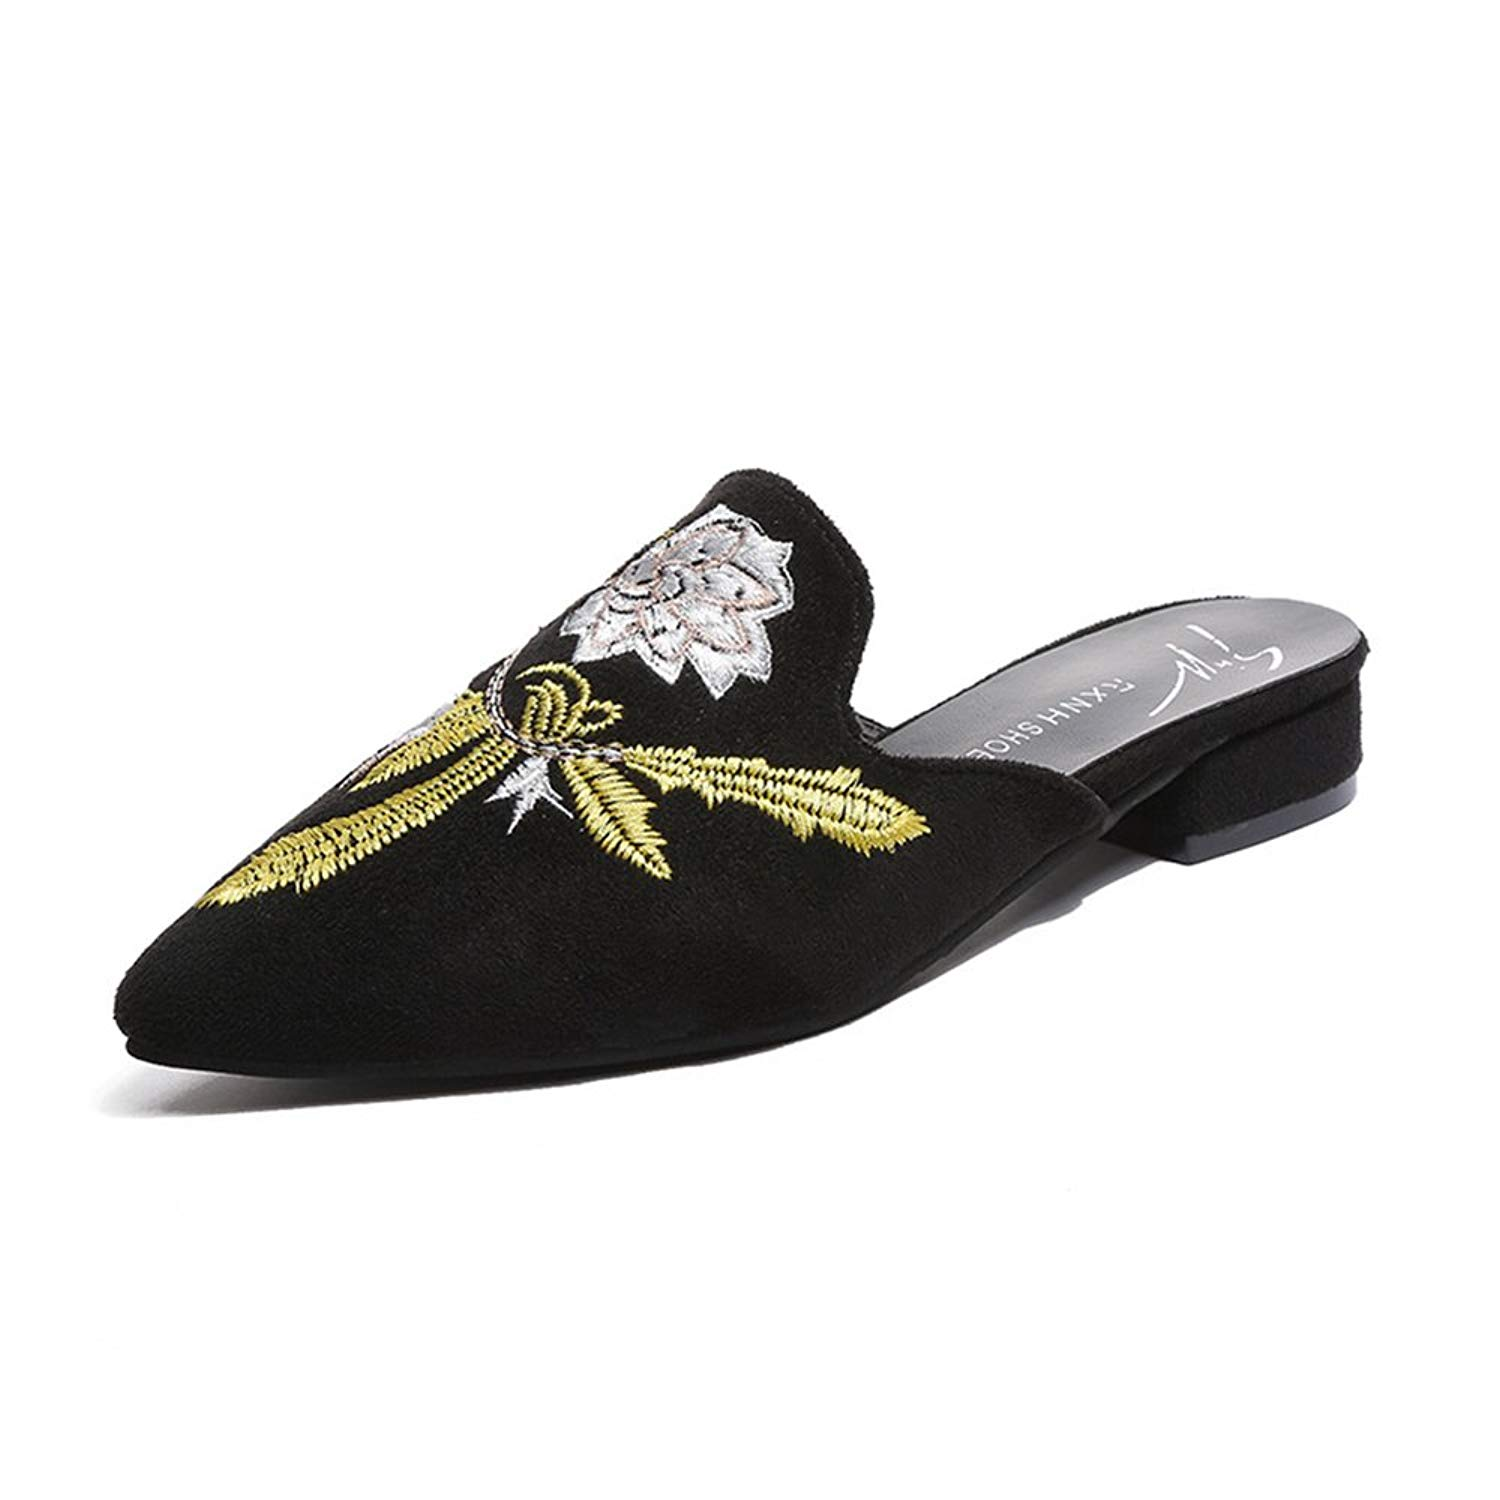 f9446b19b094 Get Quotations · COLOV Loafers for Women